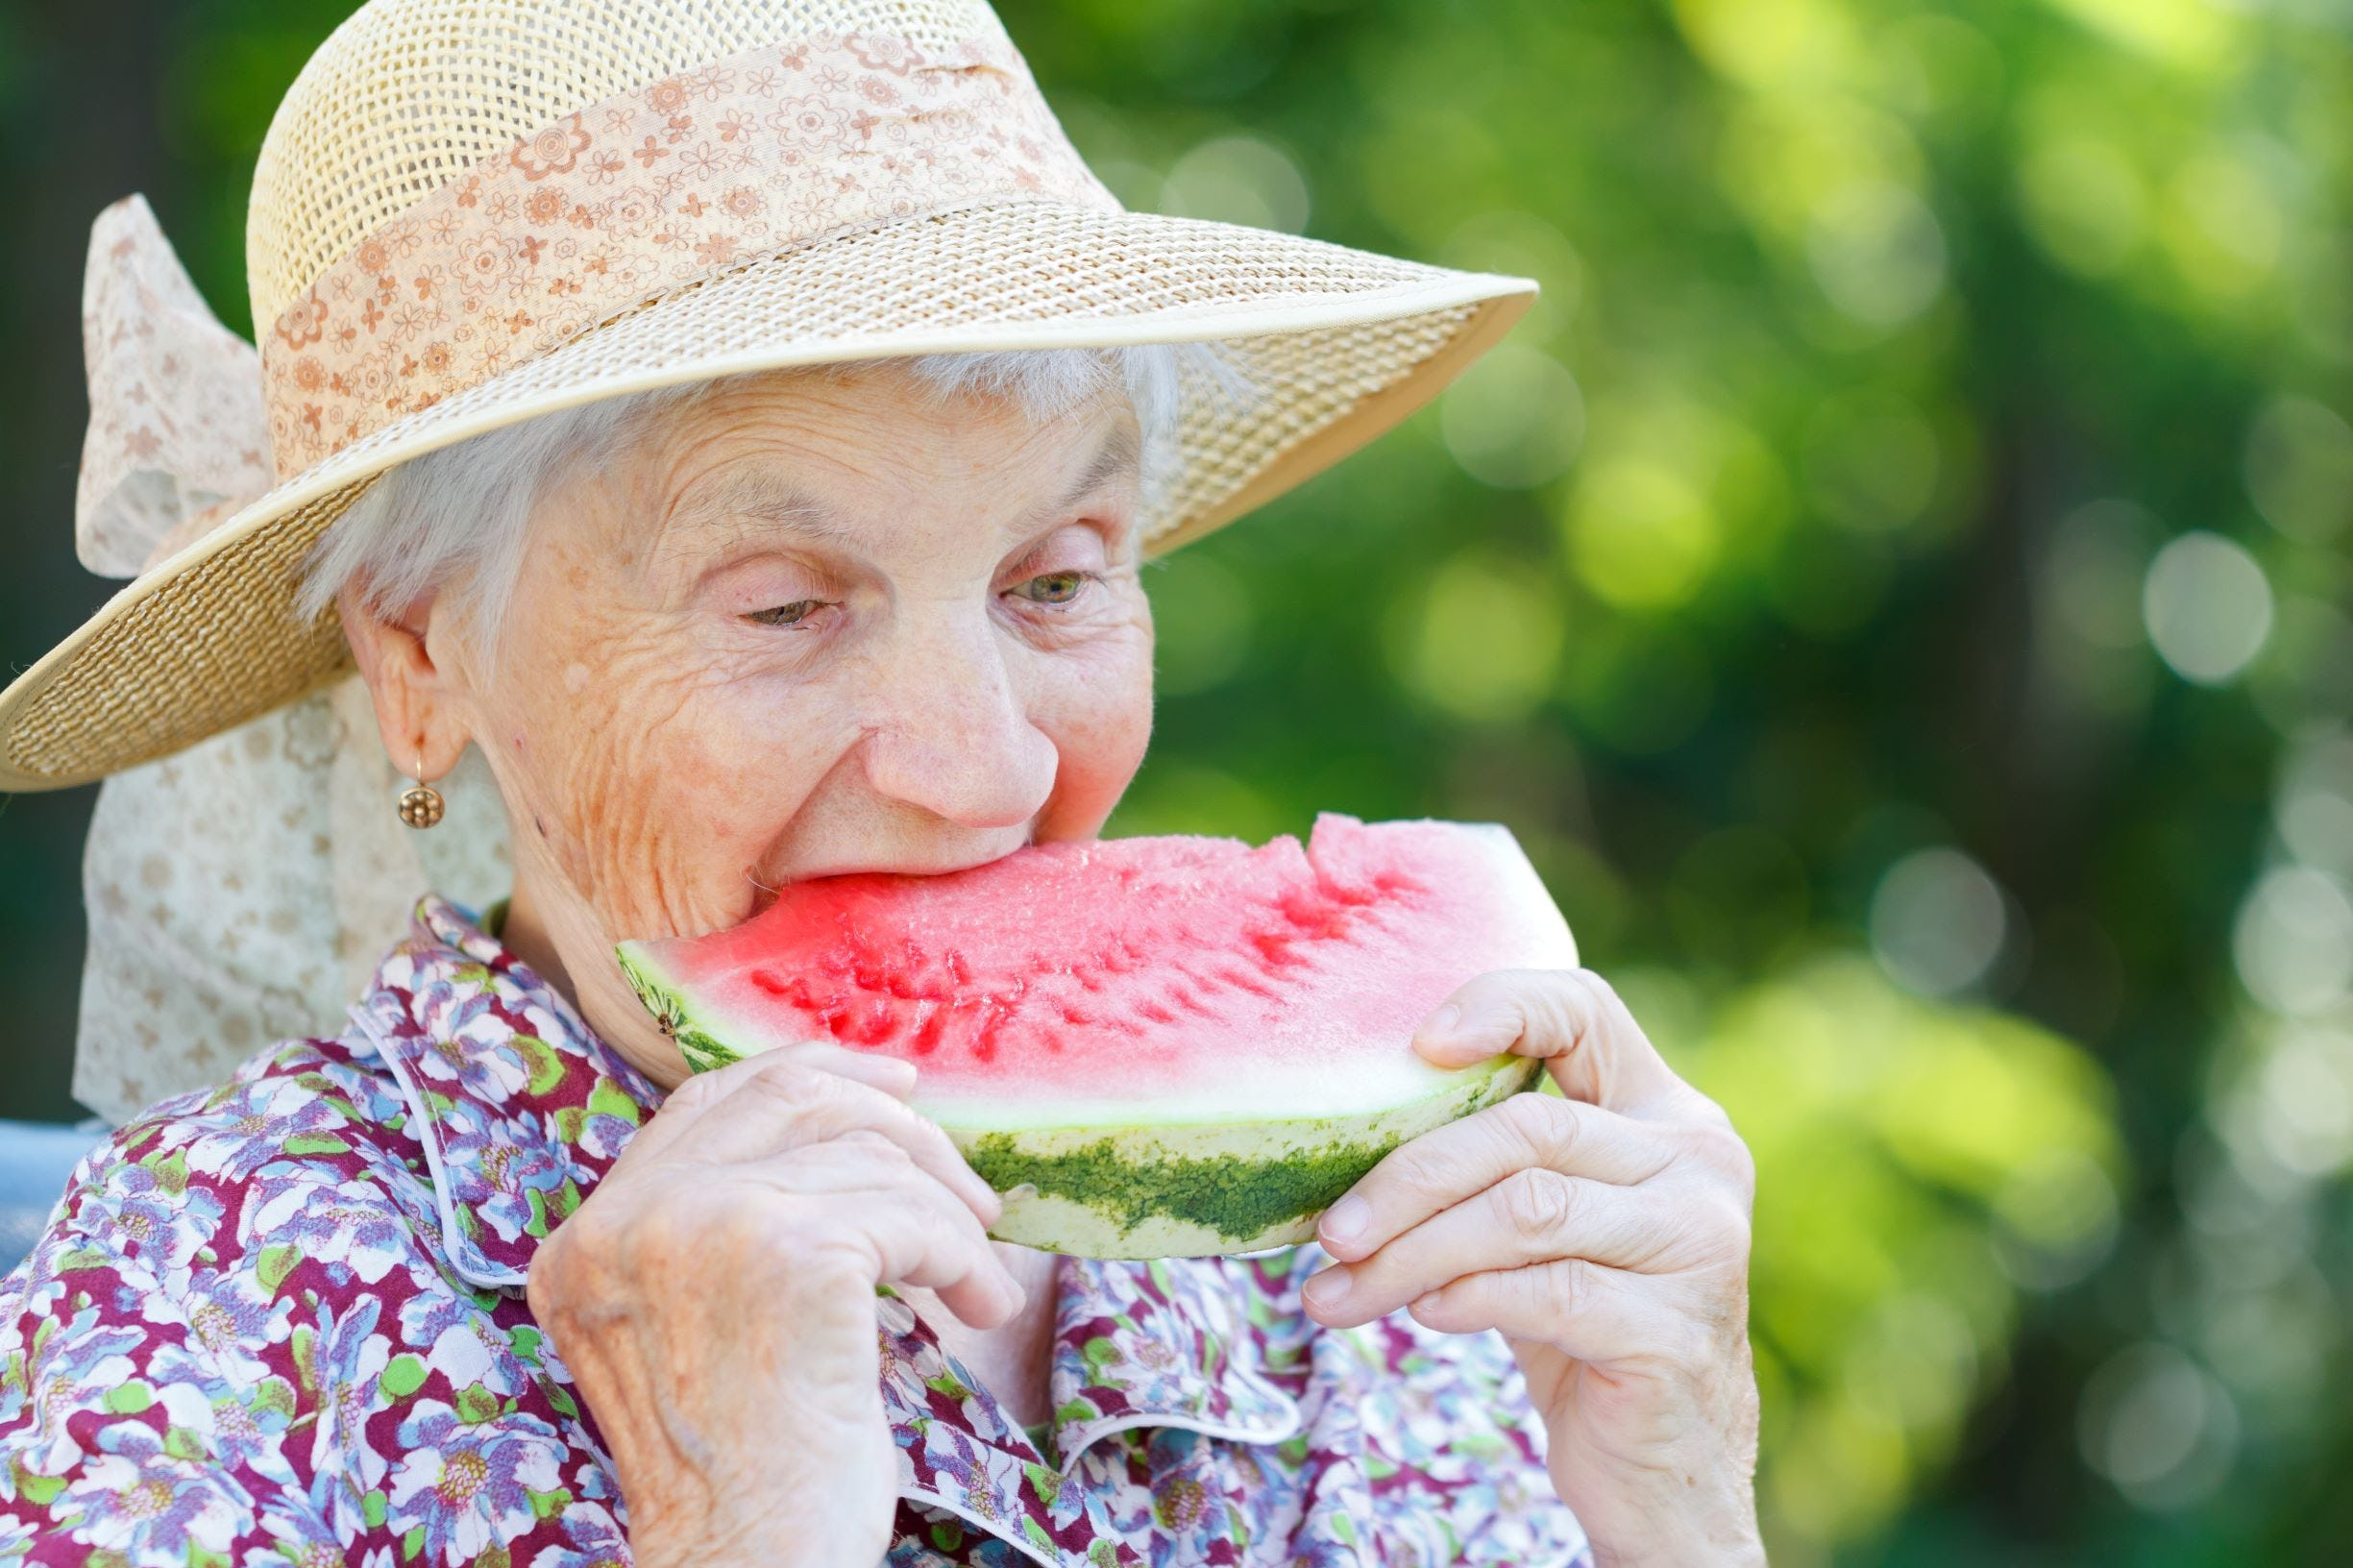 Elderly woman eating a watermelon in the summer